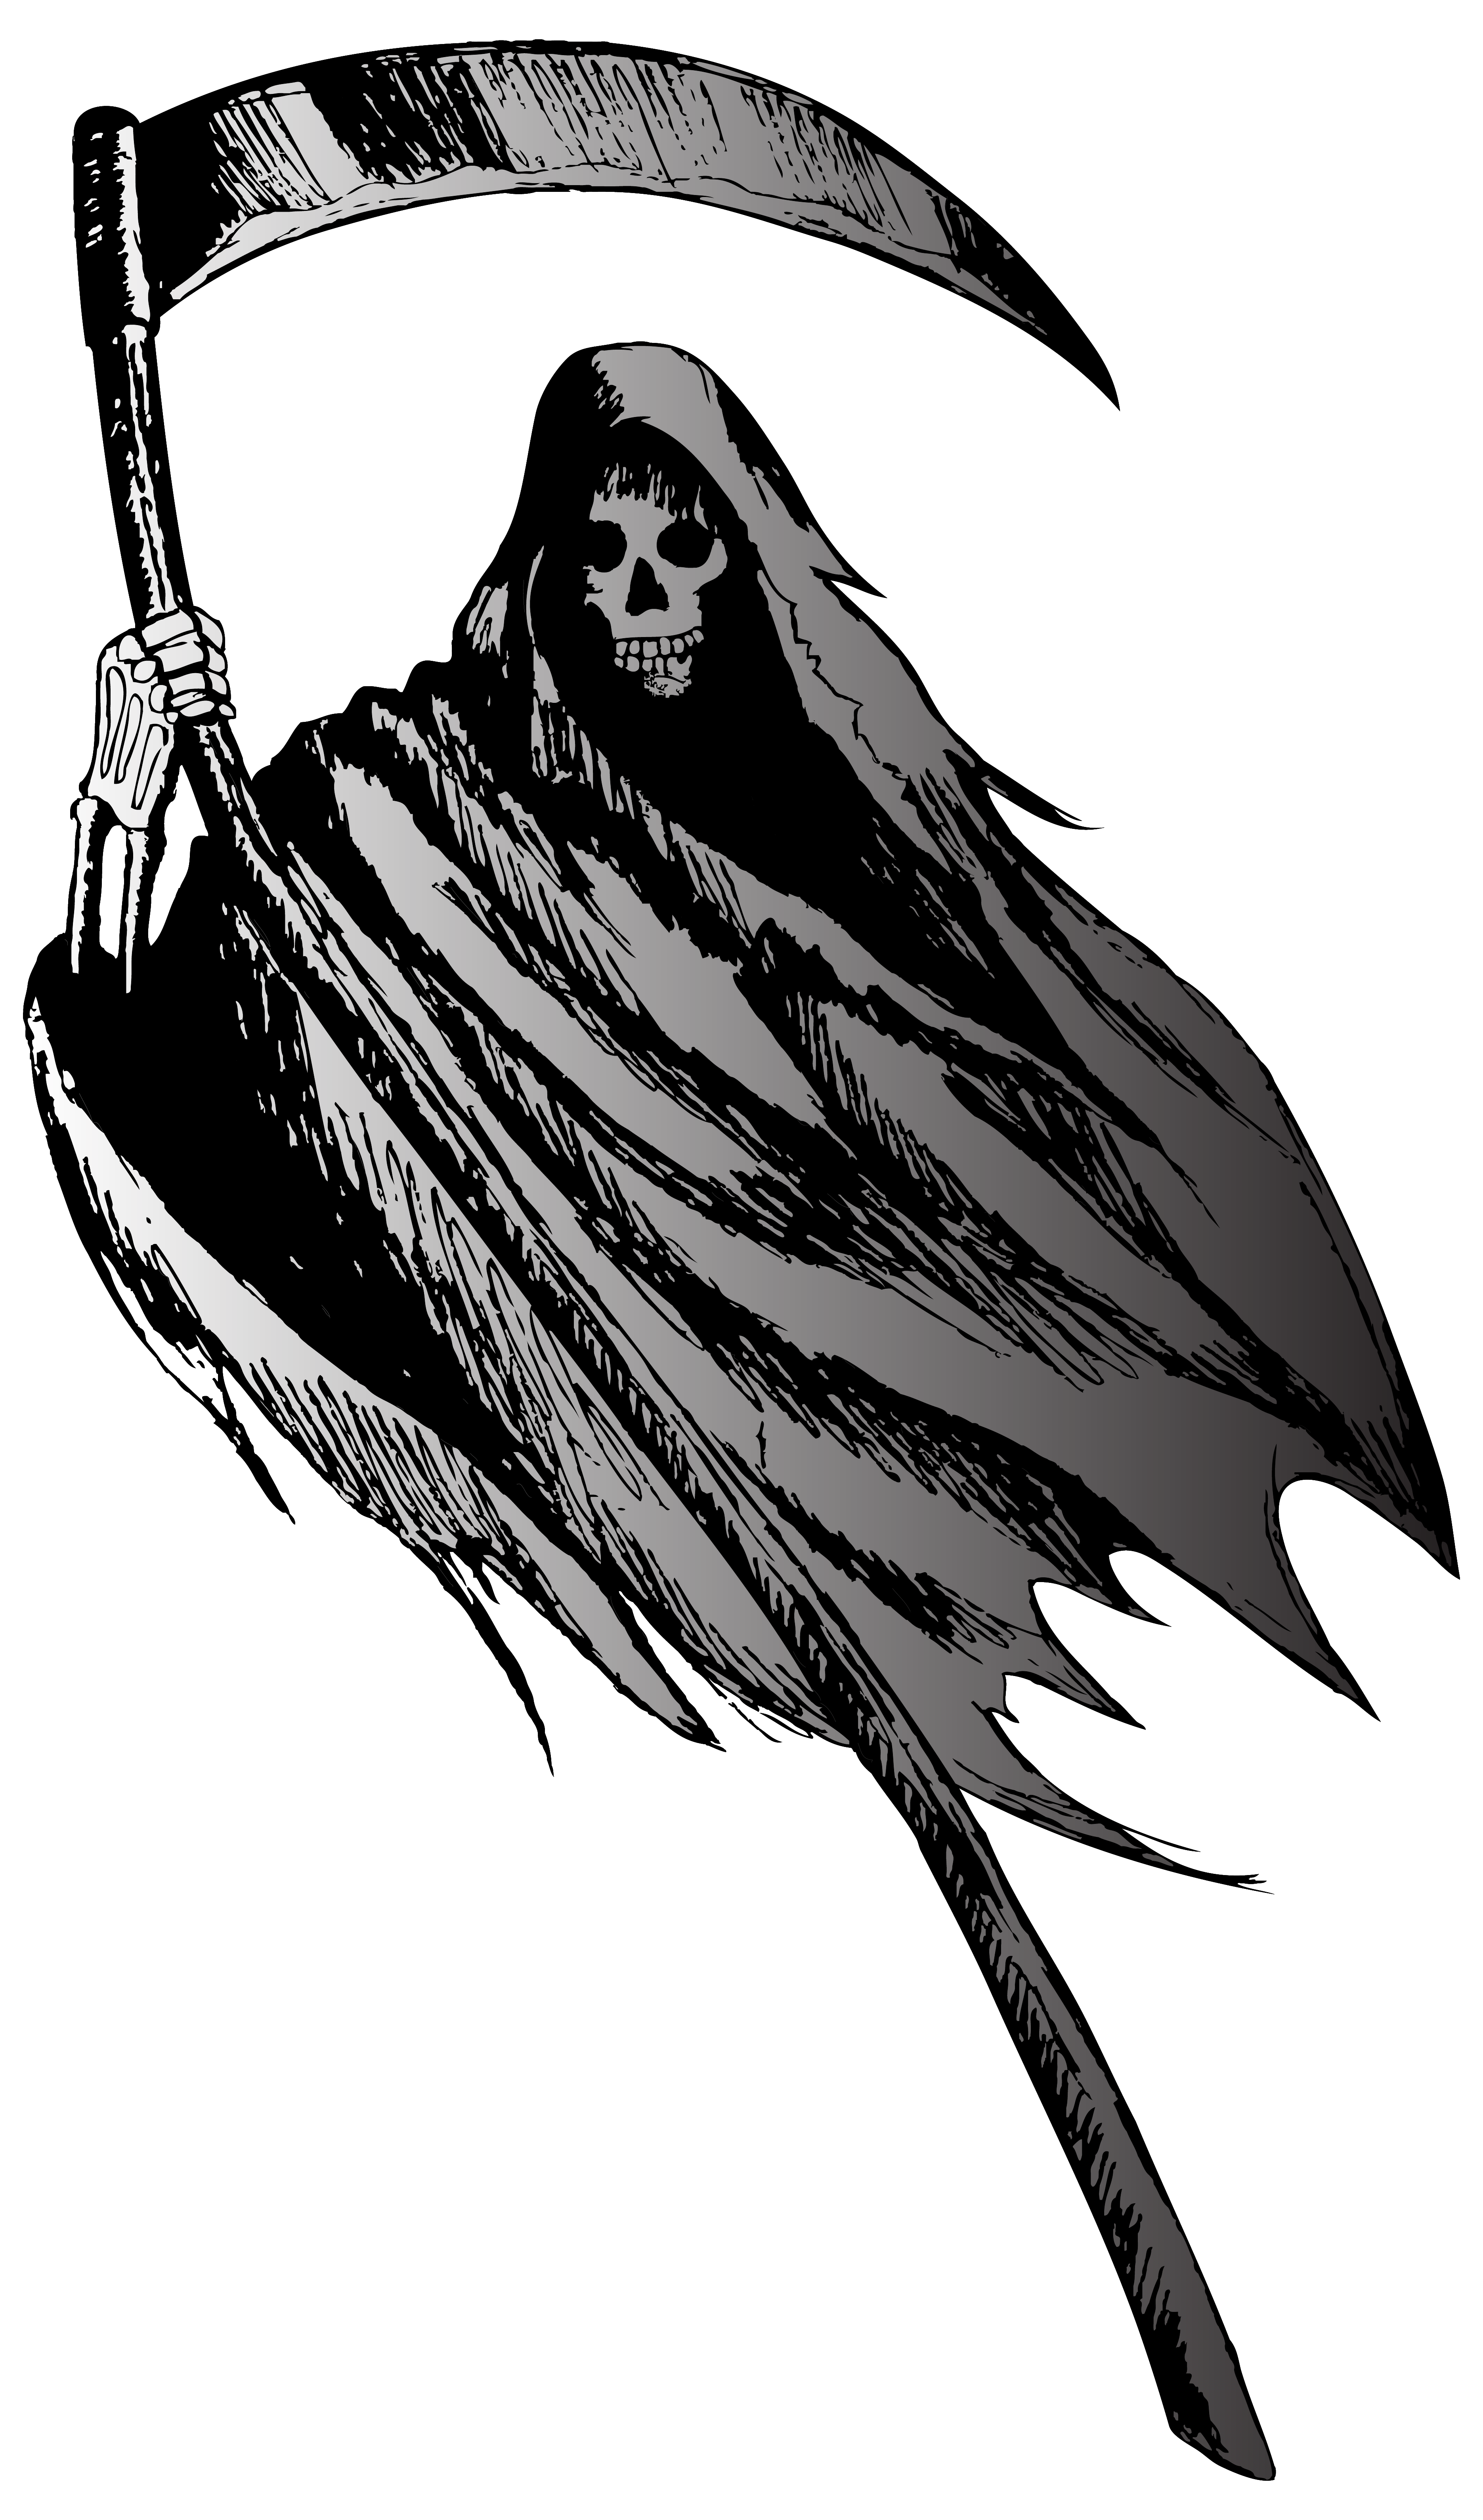 Grim Reaper Png Clipart Image Gallery Yopriceville High Quality Images And Transparent Png Free Clipart Grim Reaper Grim Reaper Art Fairytale Illustration